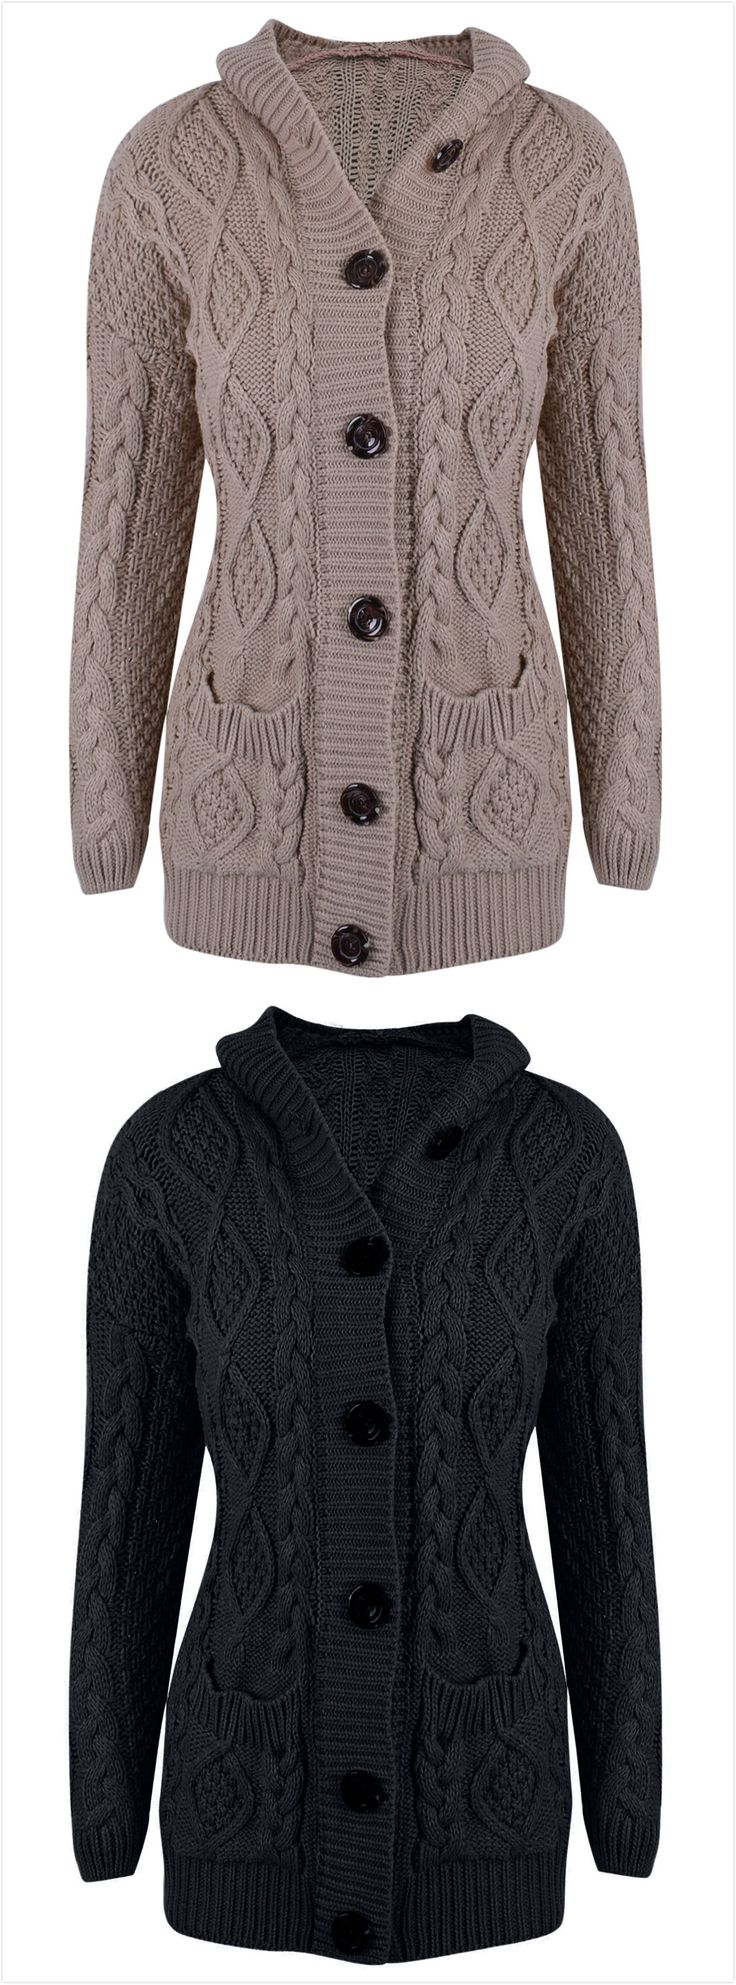 OASAP Cardigan Crazy Trends Enjoy EXTRA 10% OFF with CODE: HTDAY